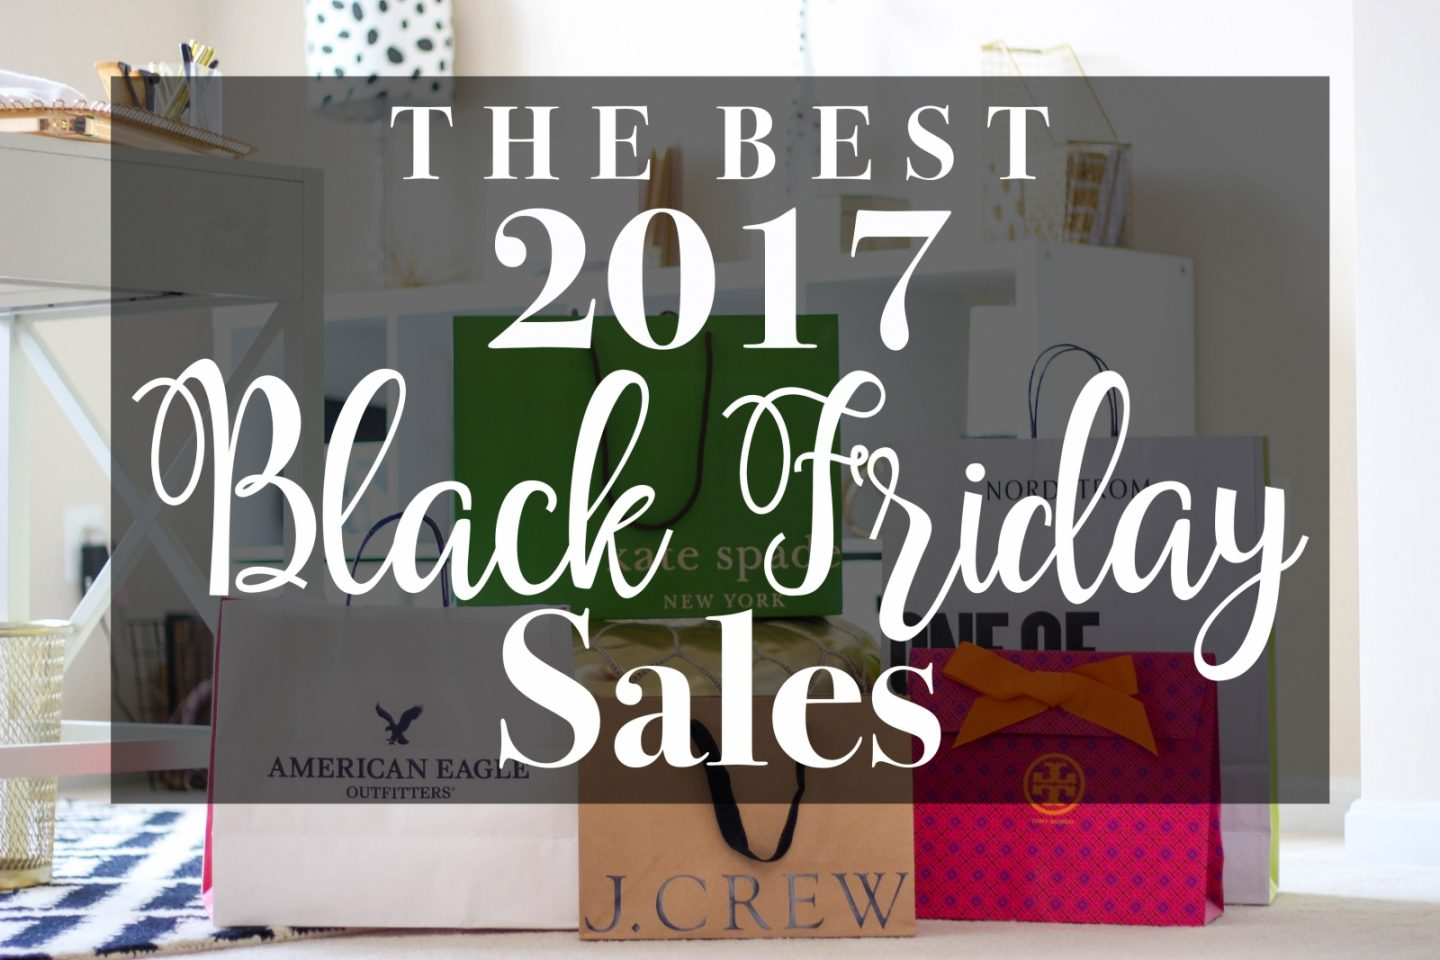 The 30 Best Black Friday Sales: Your Ultimate Black Friday Guide by Washington DC style blogger Styled Blonde